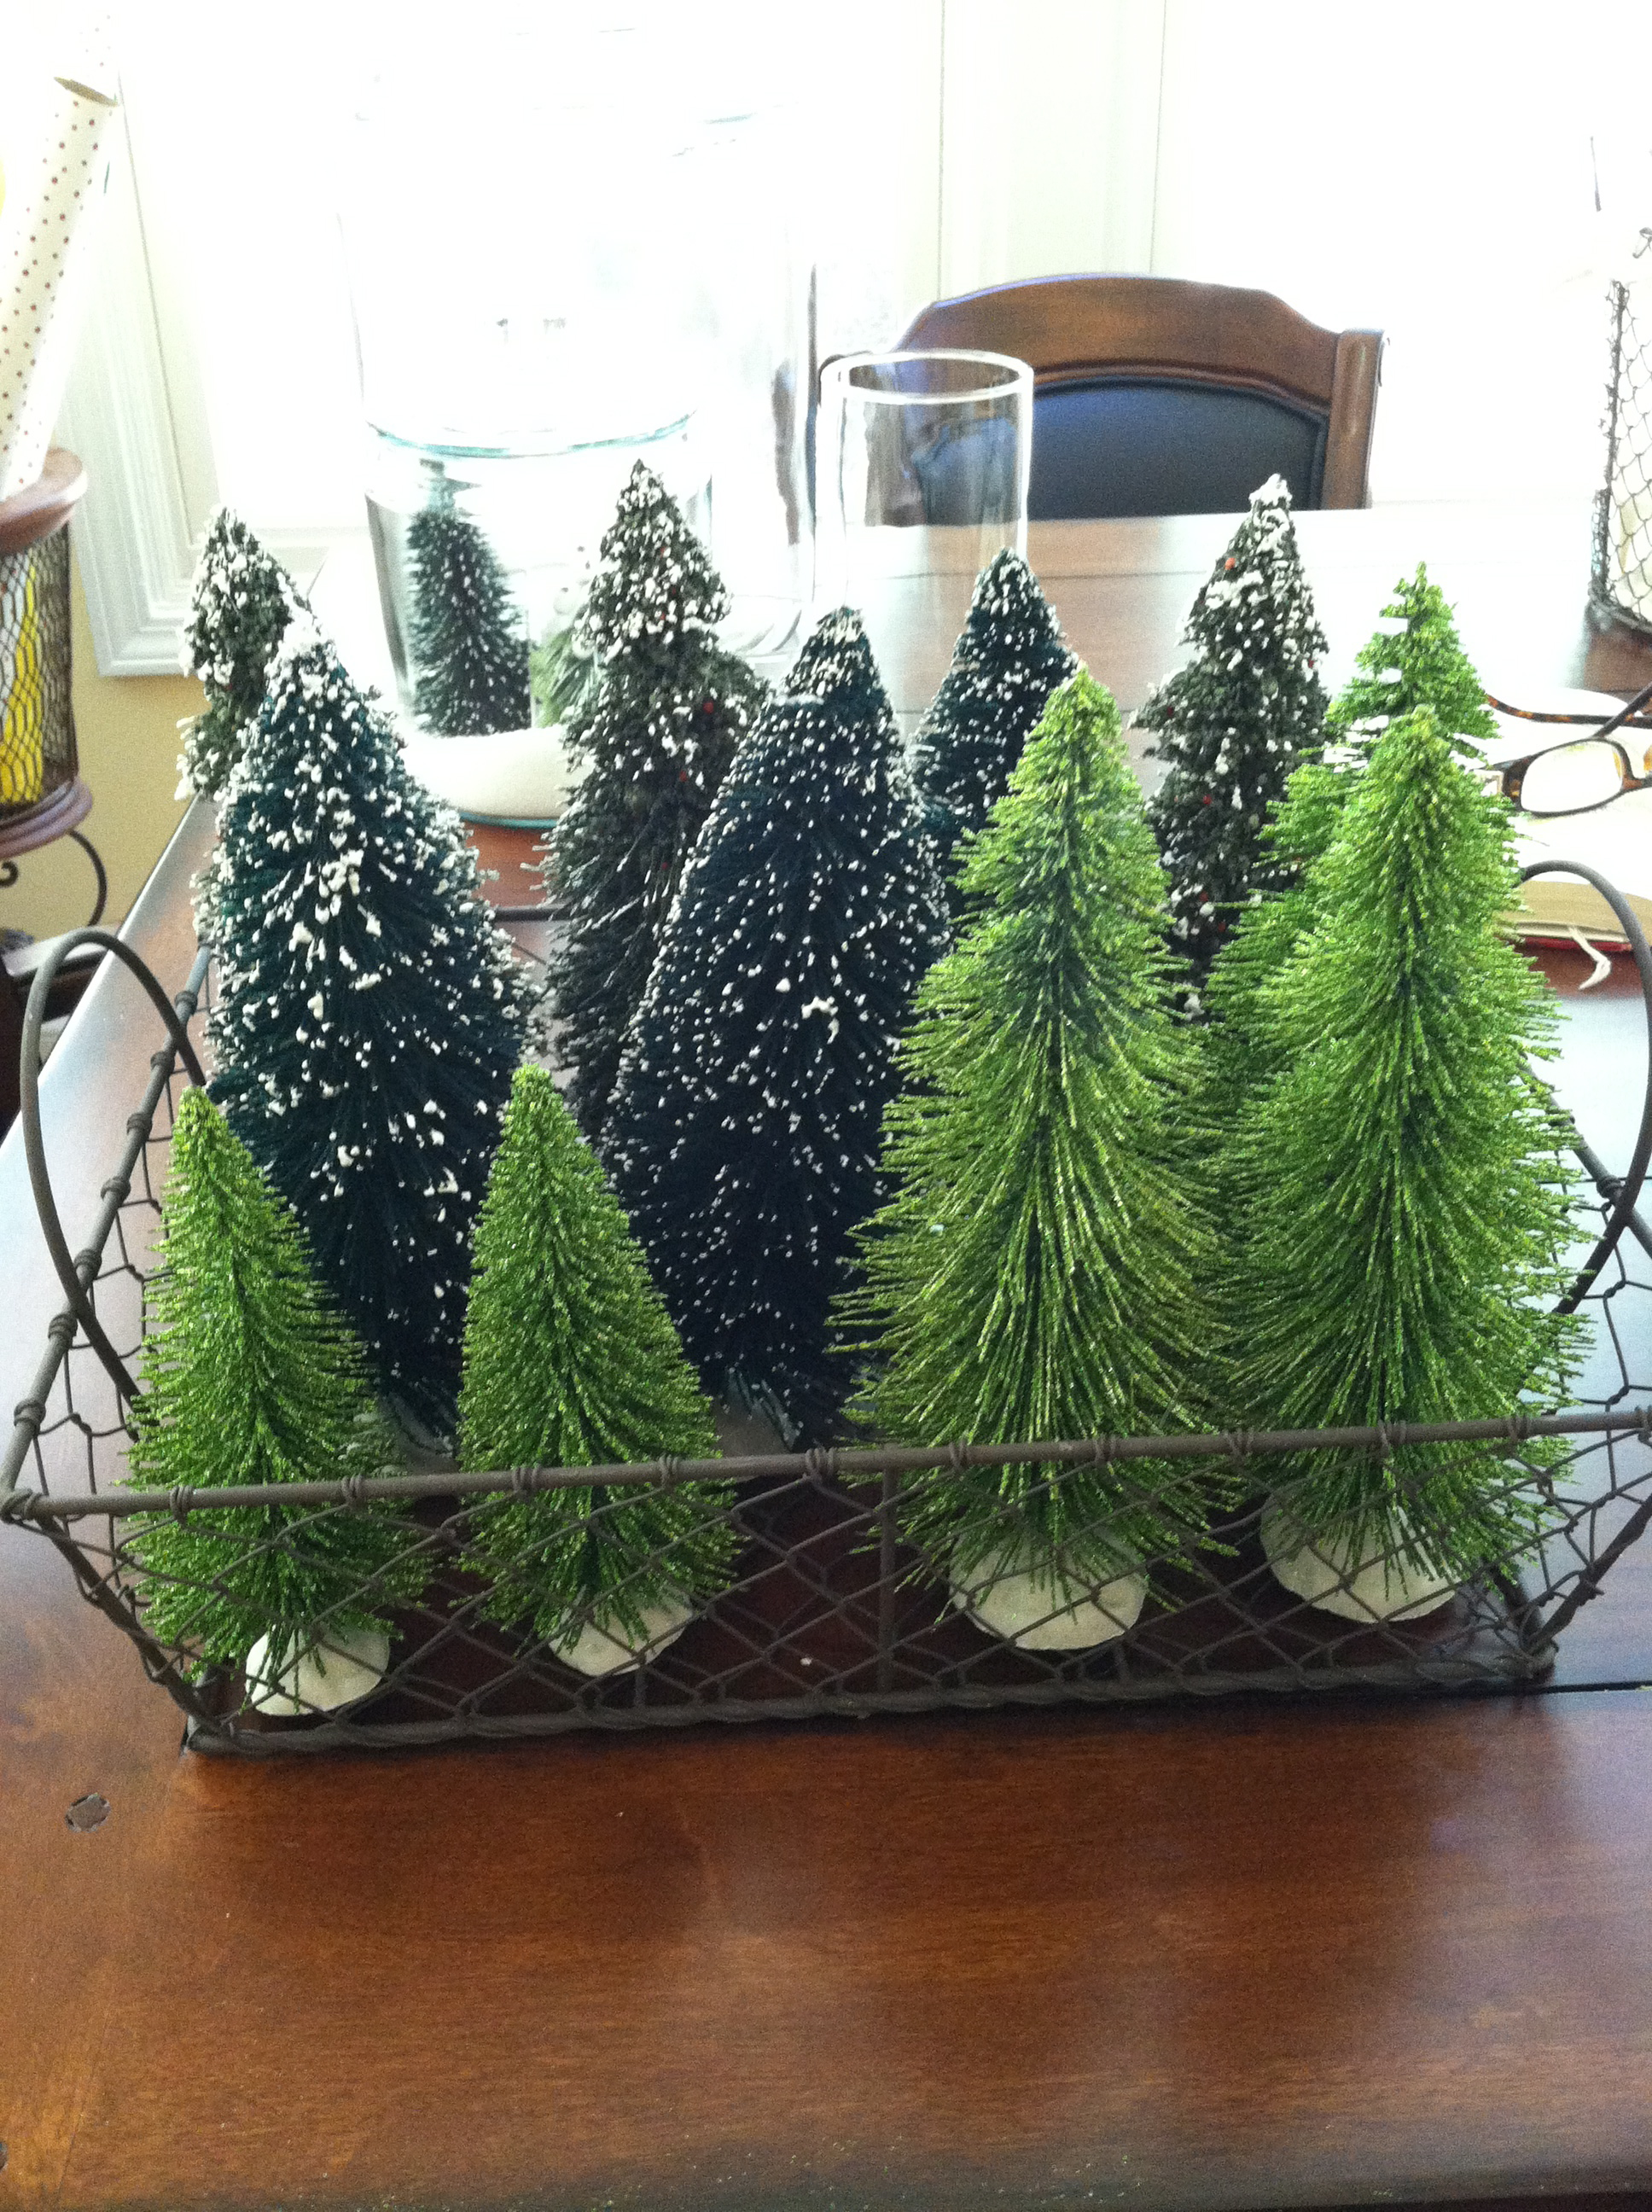 How To Decorate With Mini Christmas Figurines And Trees ...